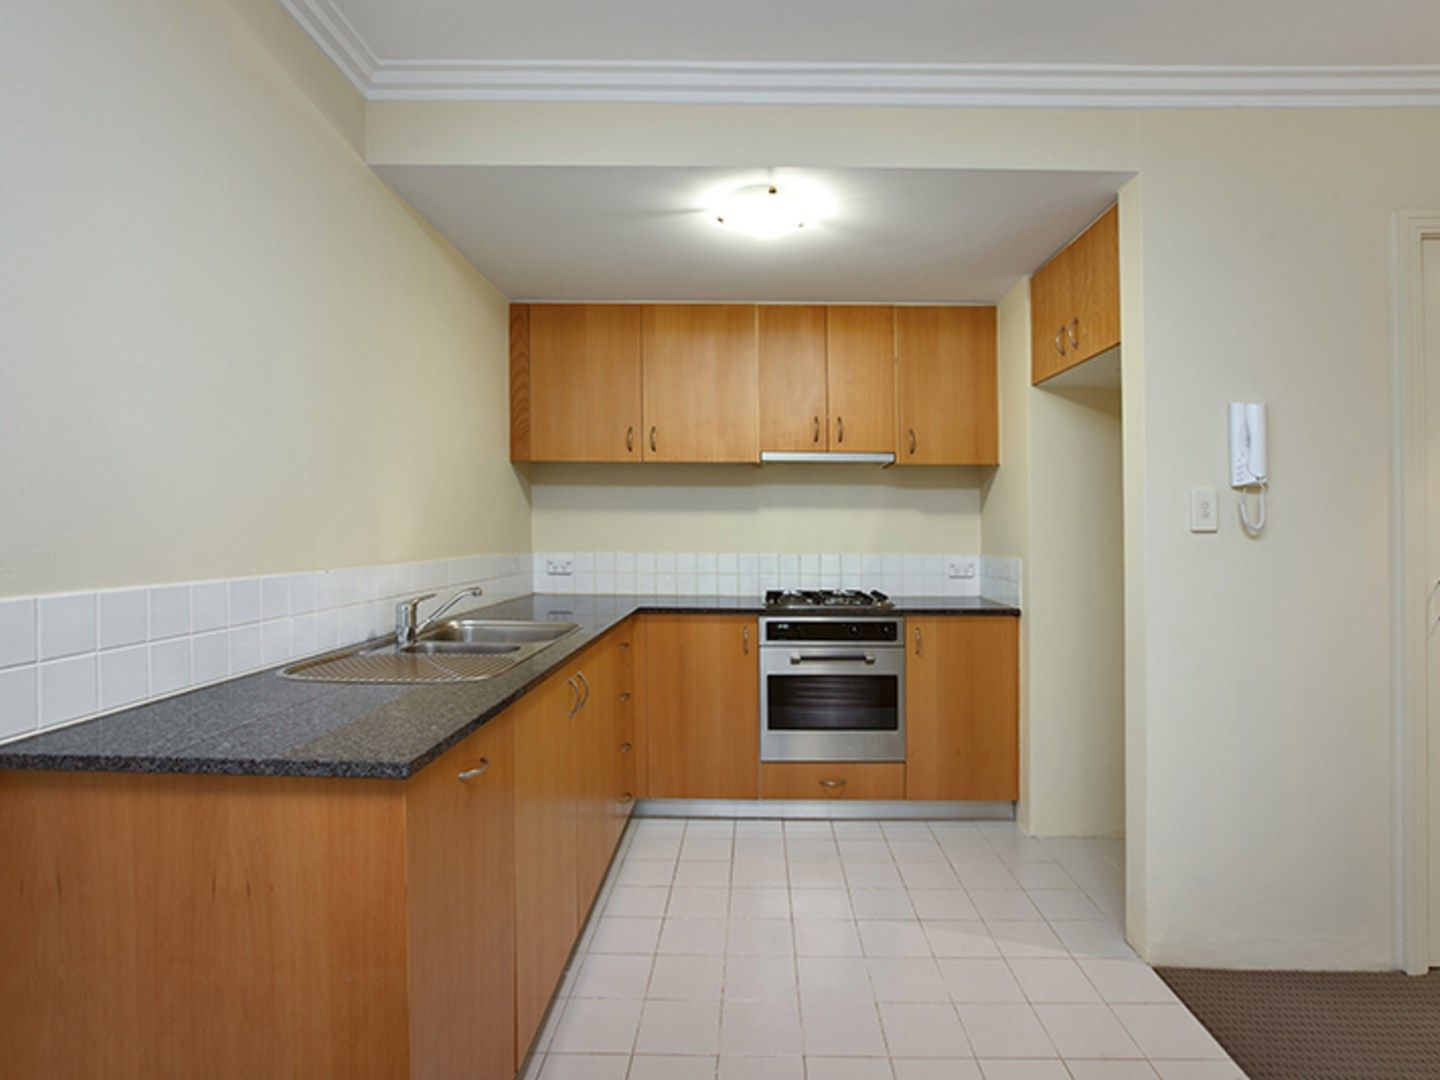 52/236 Pacific Highway, Crows Nest NSW 2065, Image 0